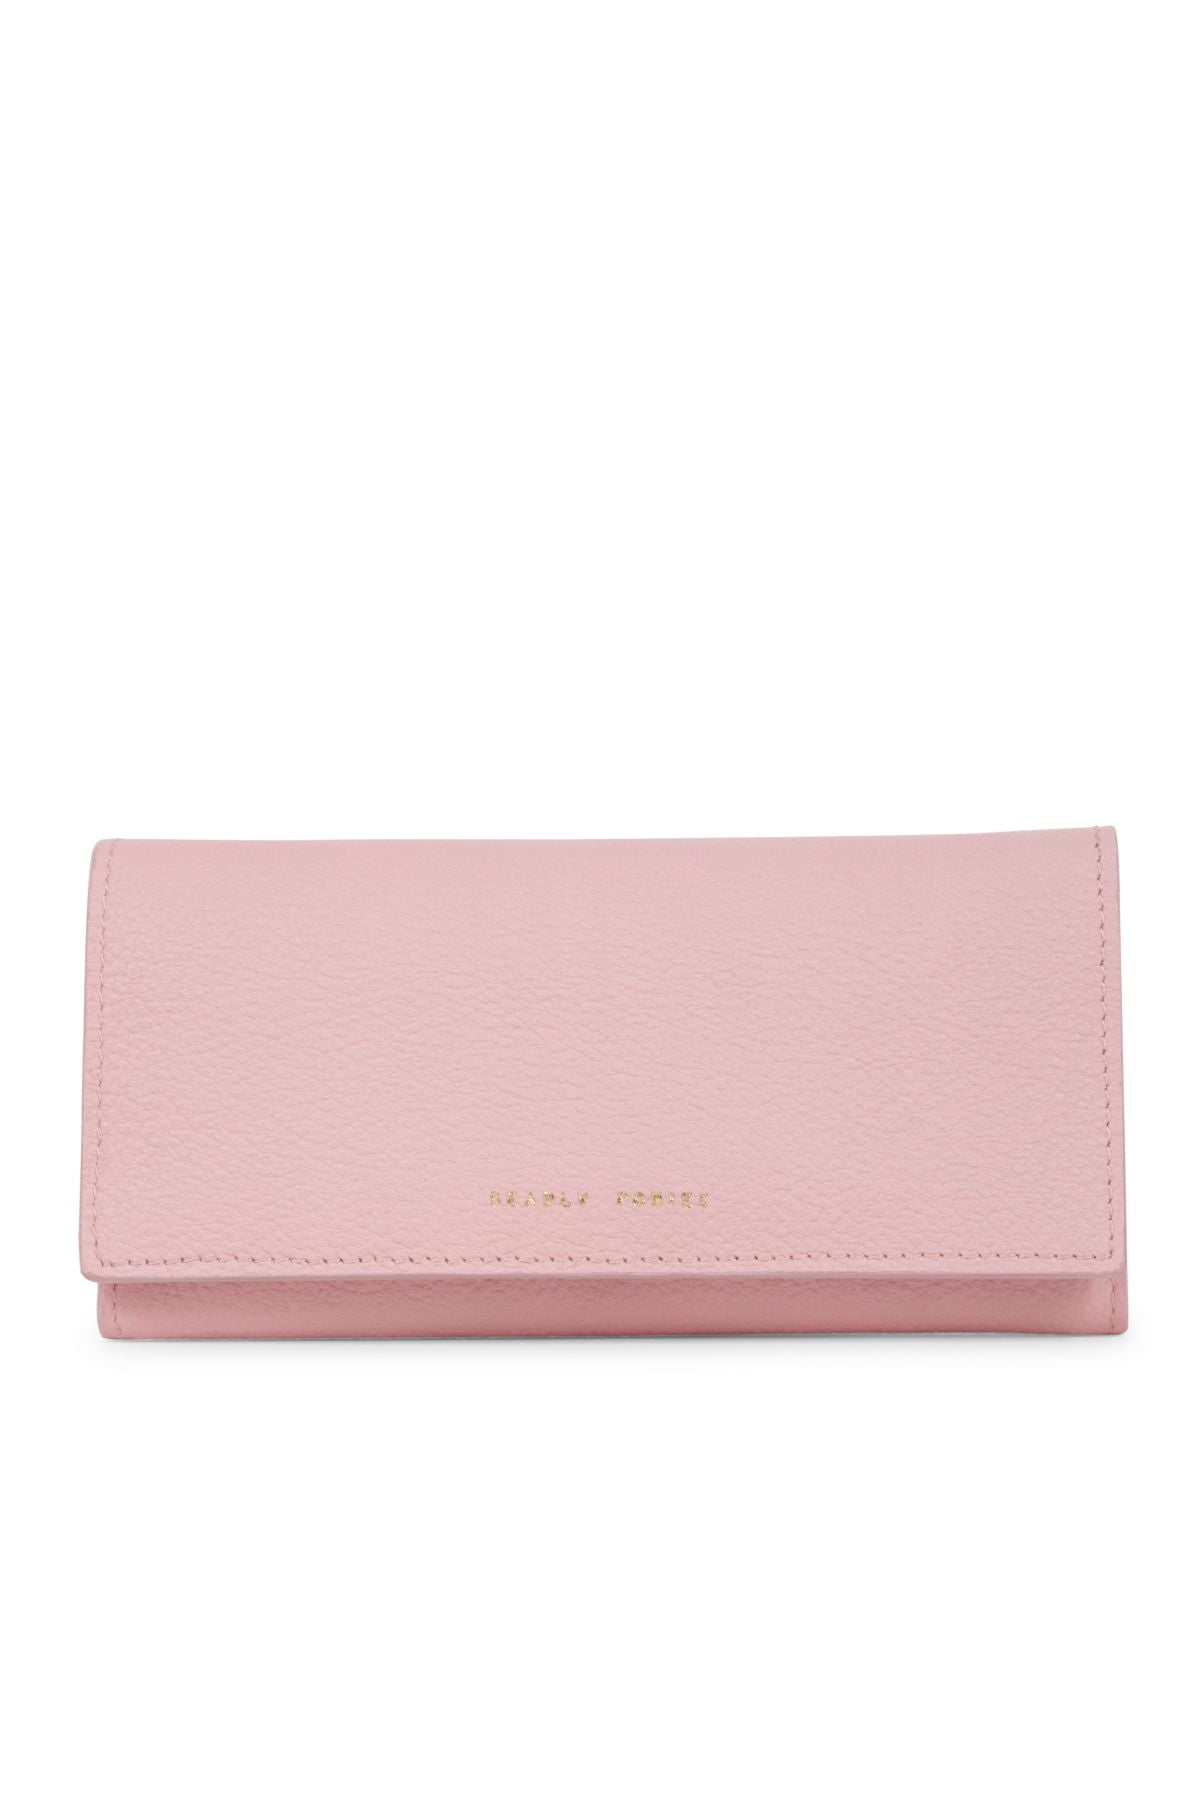 Deadly Ponies Lady Wallet // Lotus